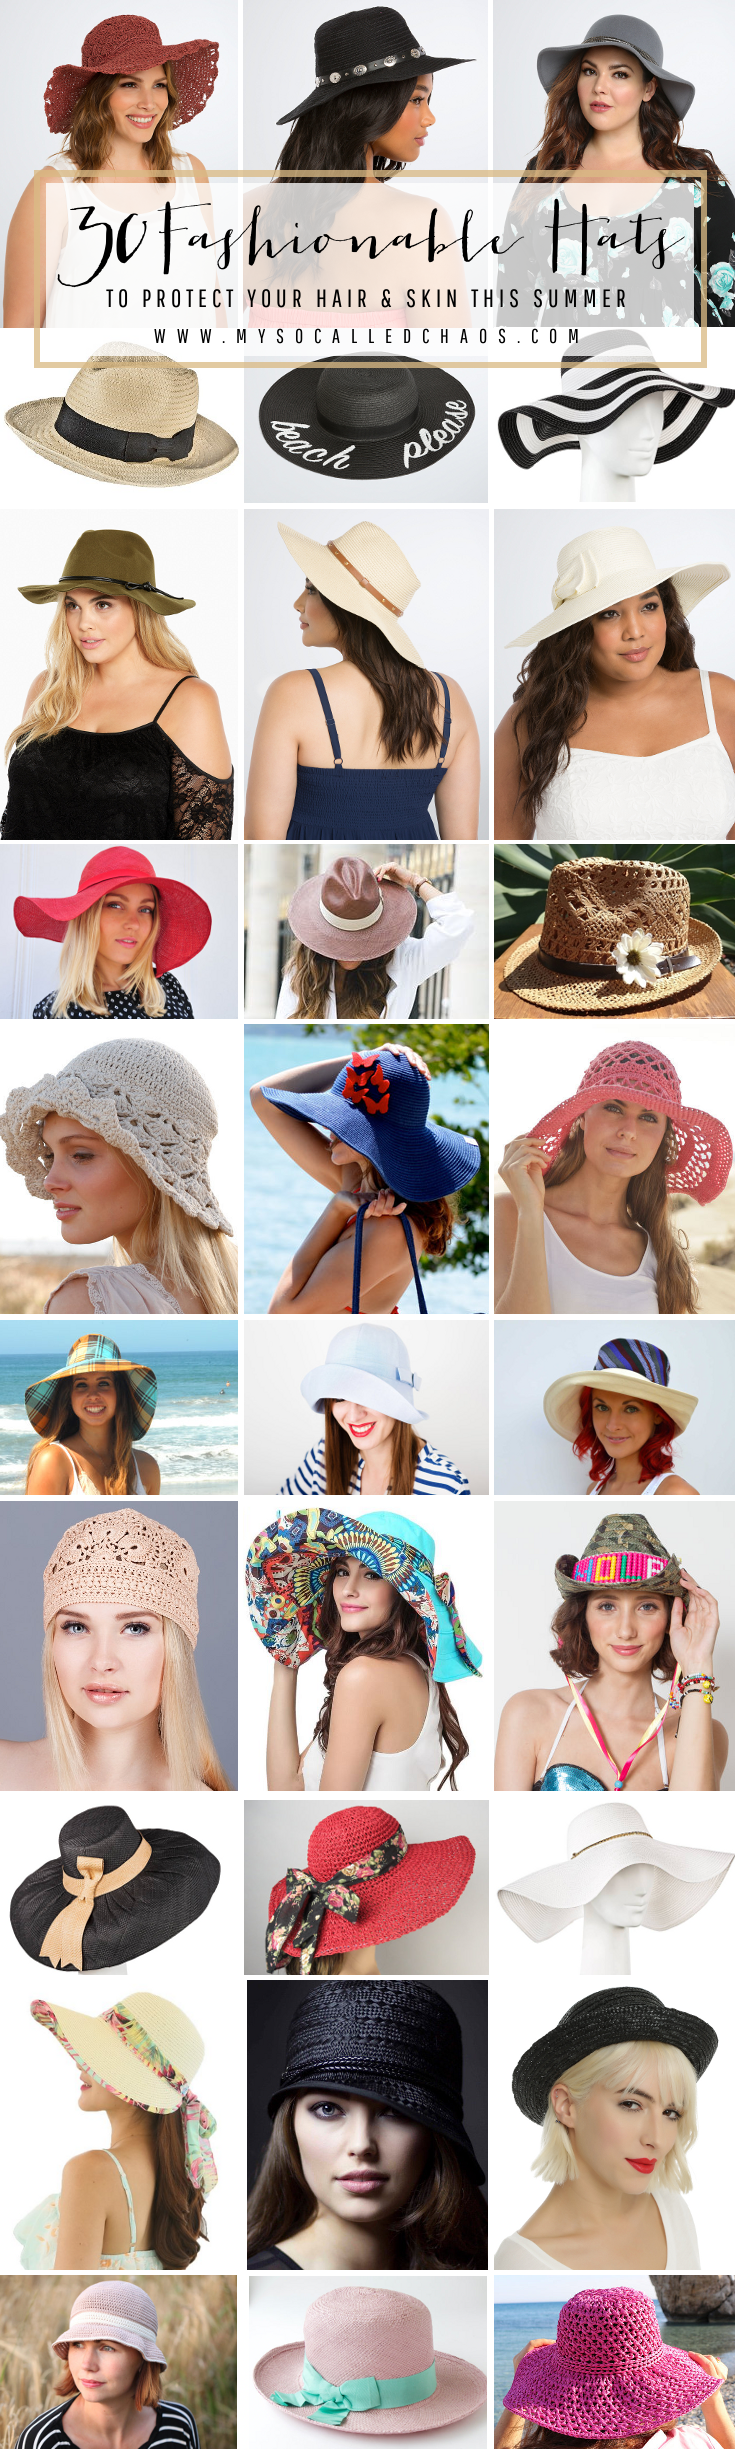 30 Fashionable Summer Hats to Protect Your Hair & Skin This Summer